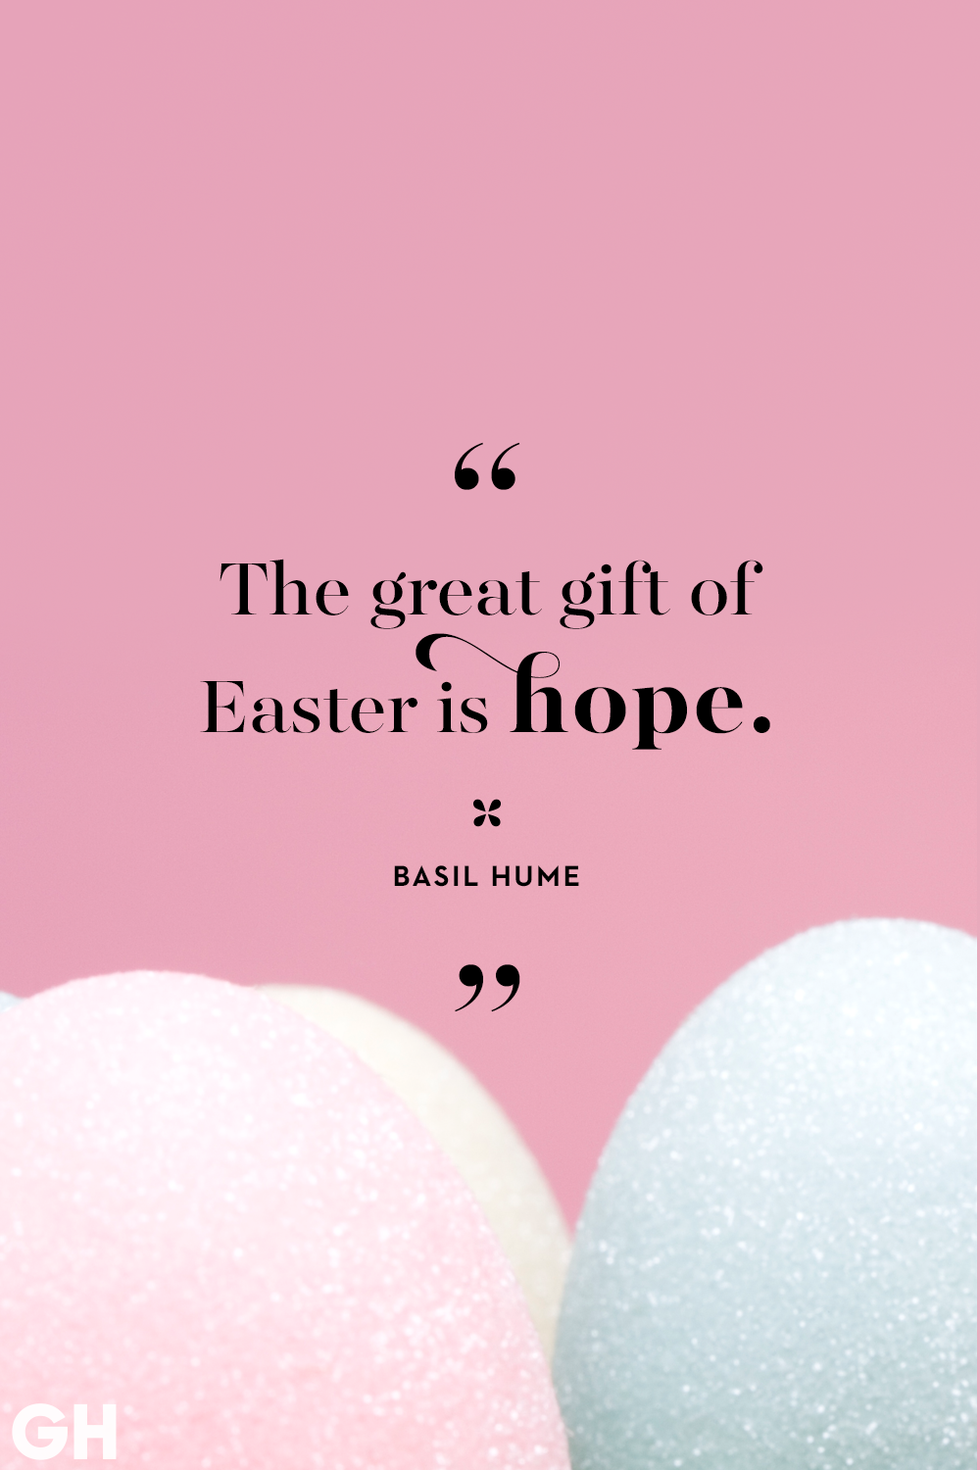 Photo of These 35 Uplifting Easter Quotes Are Perfect for Sharing With Friends and Family